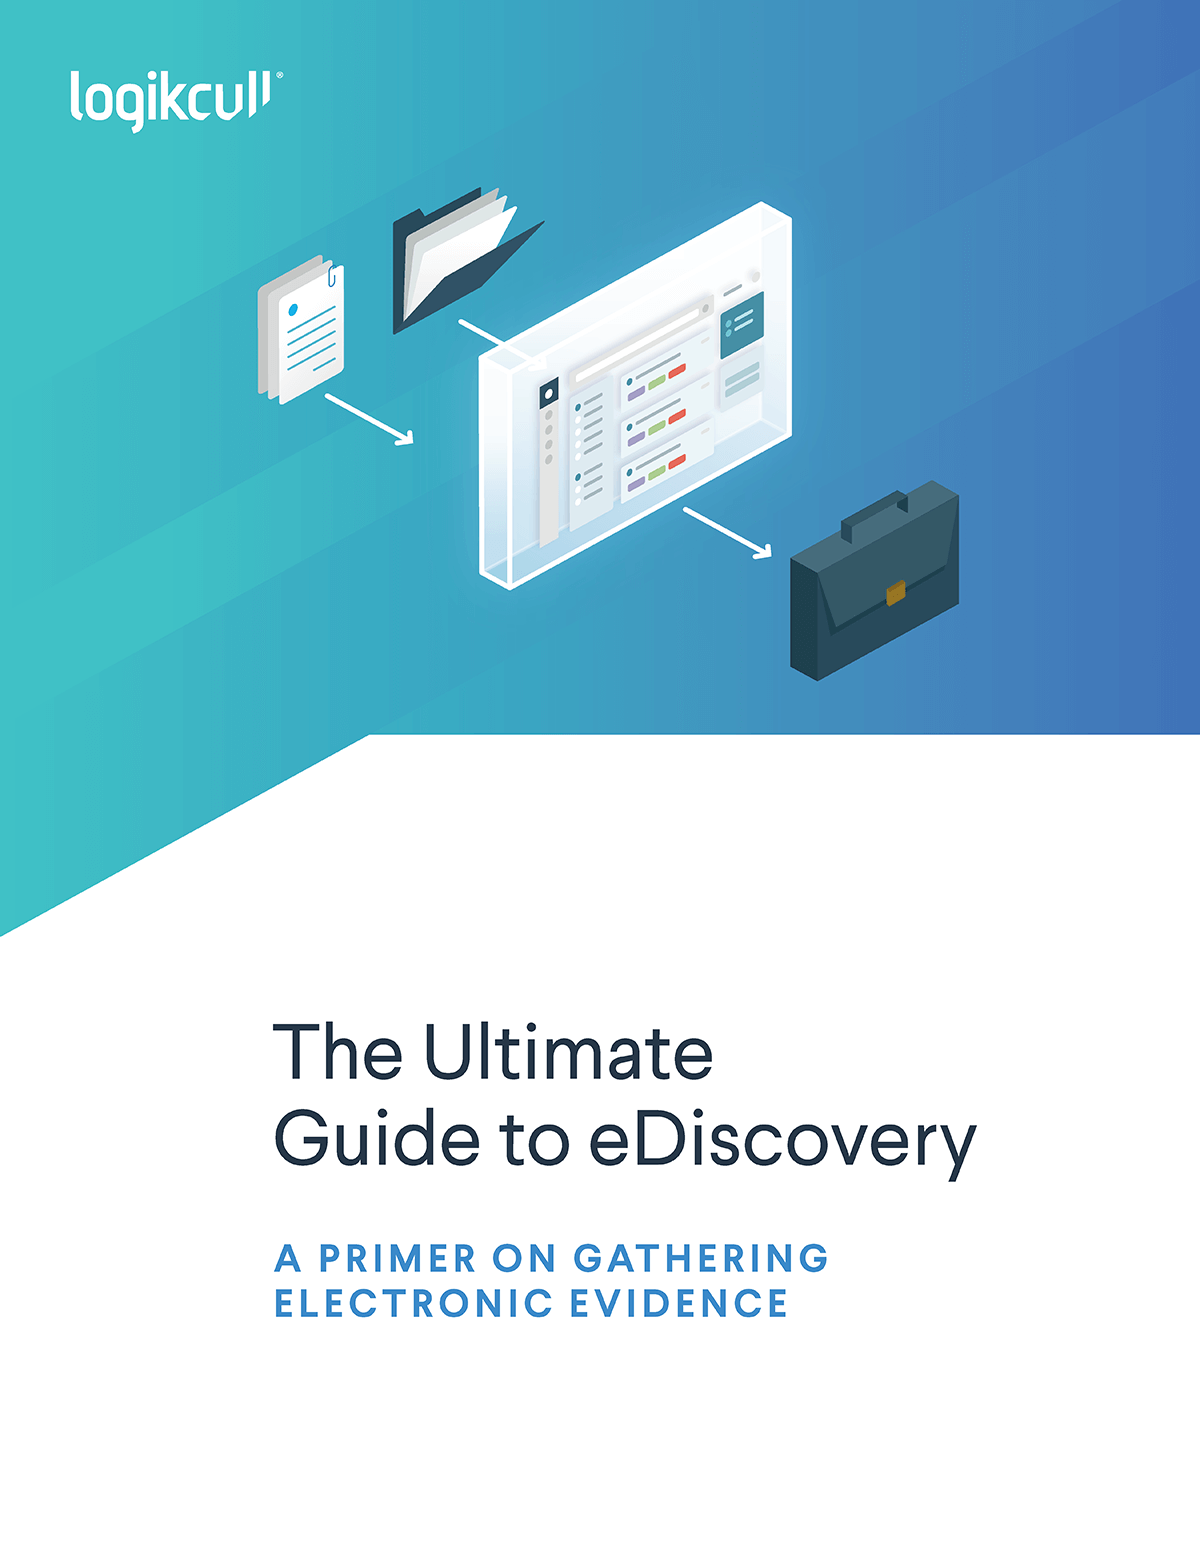 The Ultimate Guide to eDiscovery